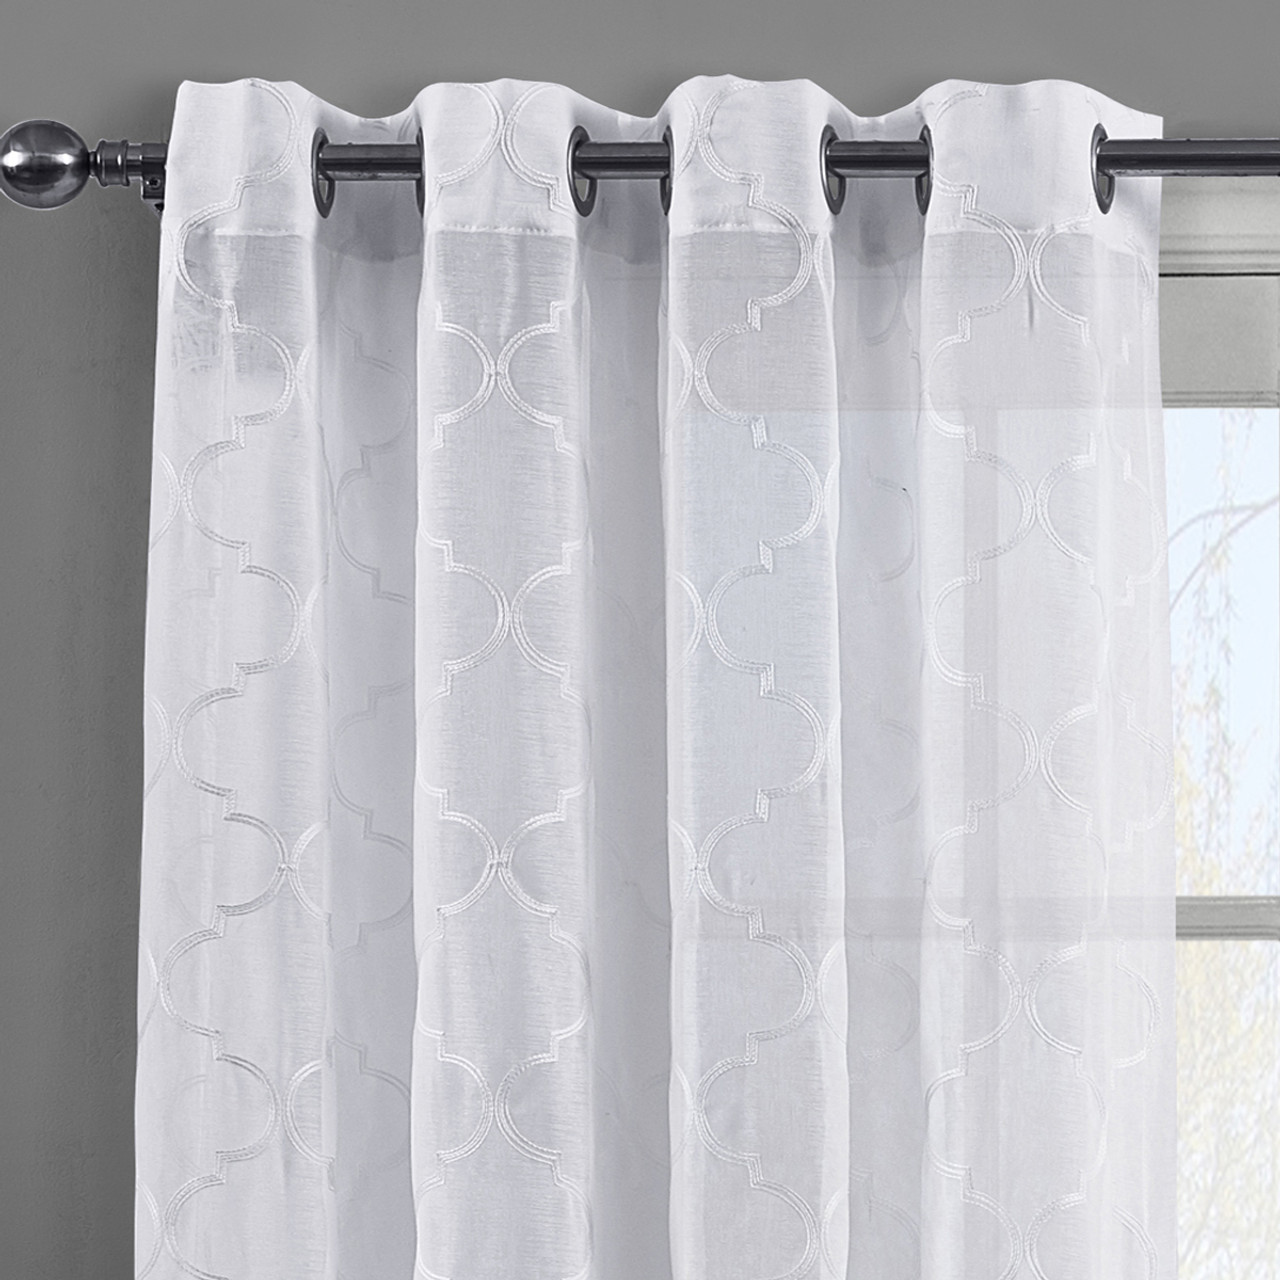 chloe in style polyester single rod white sheer curtain pd panel shop selections pocket curtains